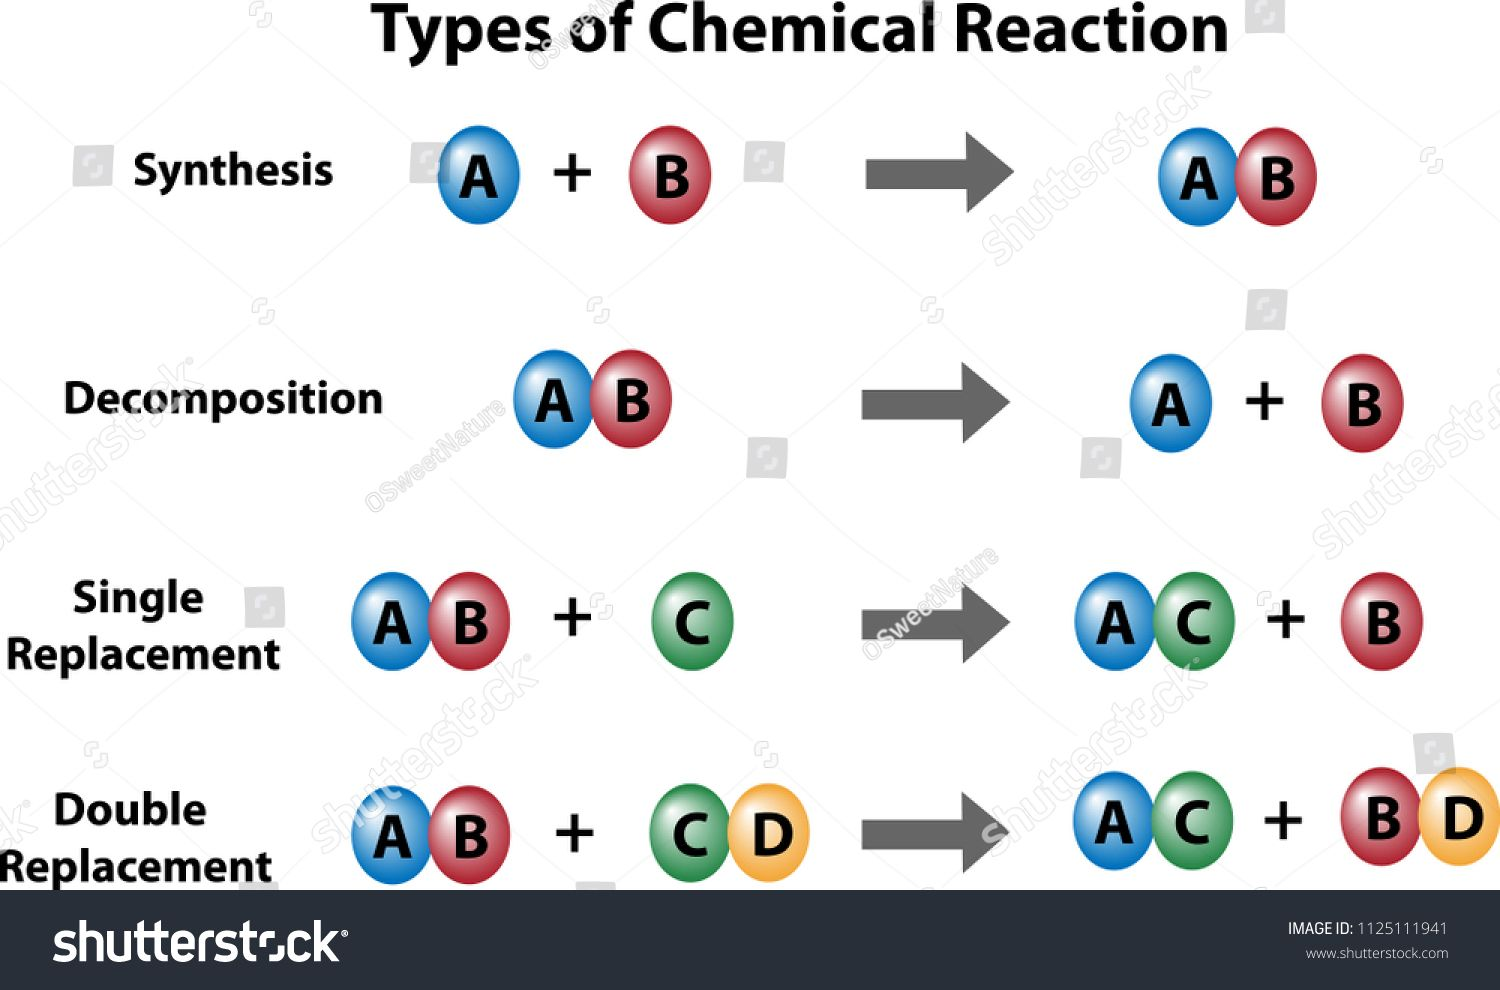 four types of chemical reactions  a diagram of synthesis, decomposition,  single replacement,